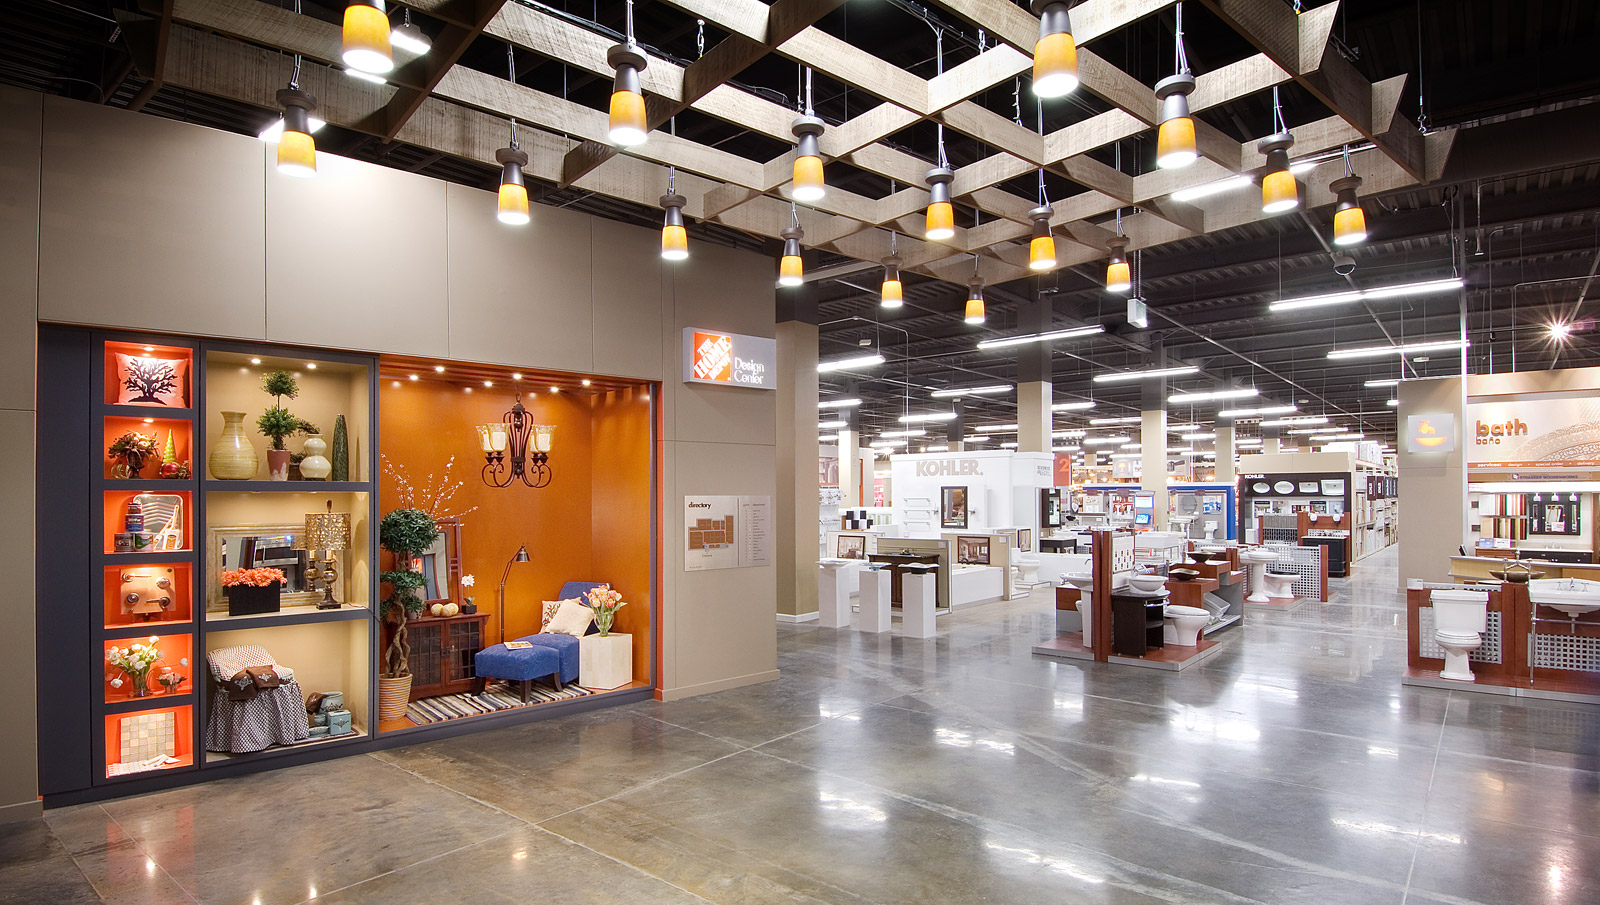 Decor Center Retail Displays Fixtures Environments